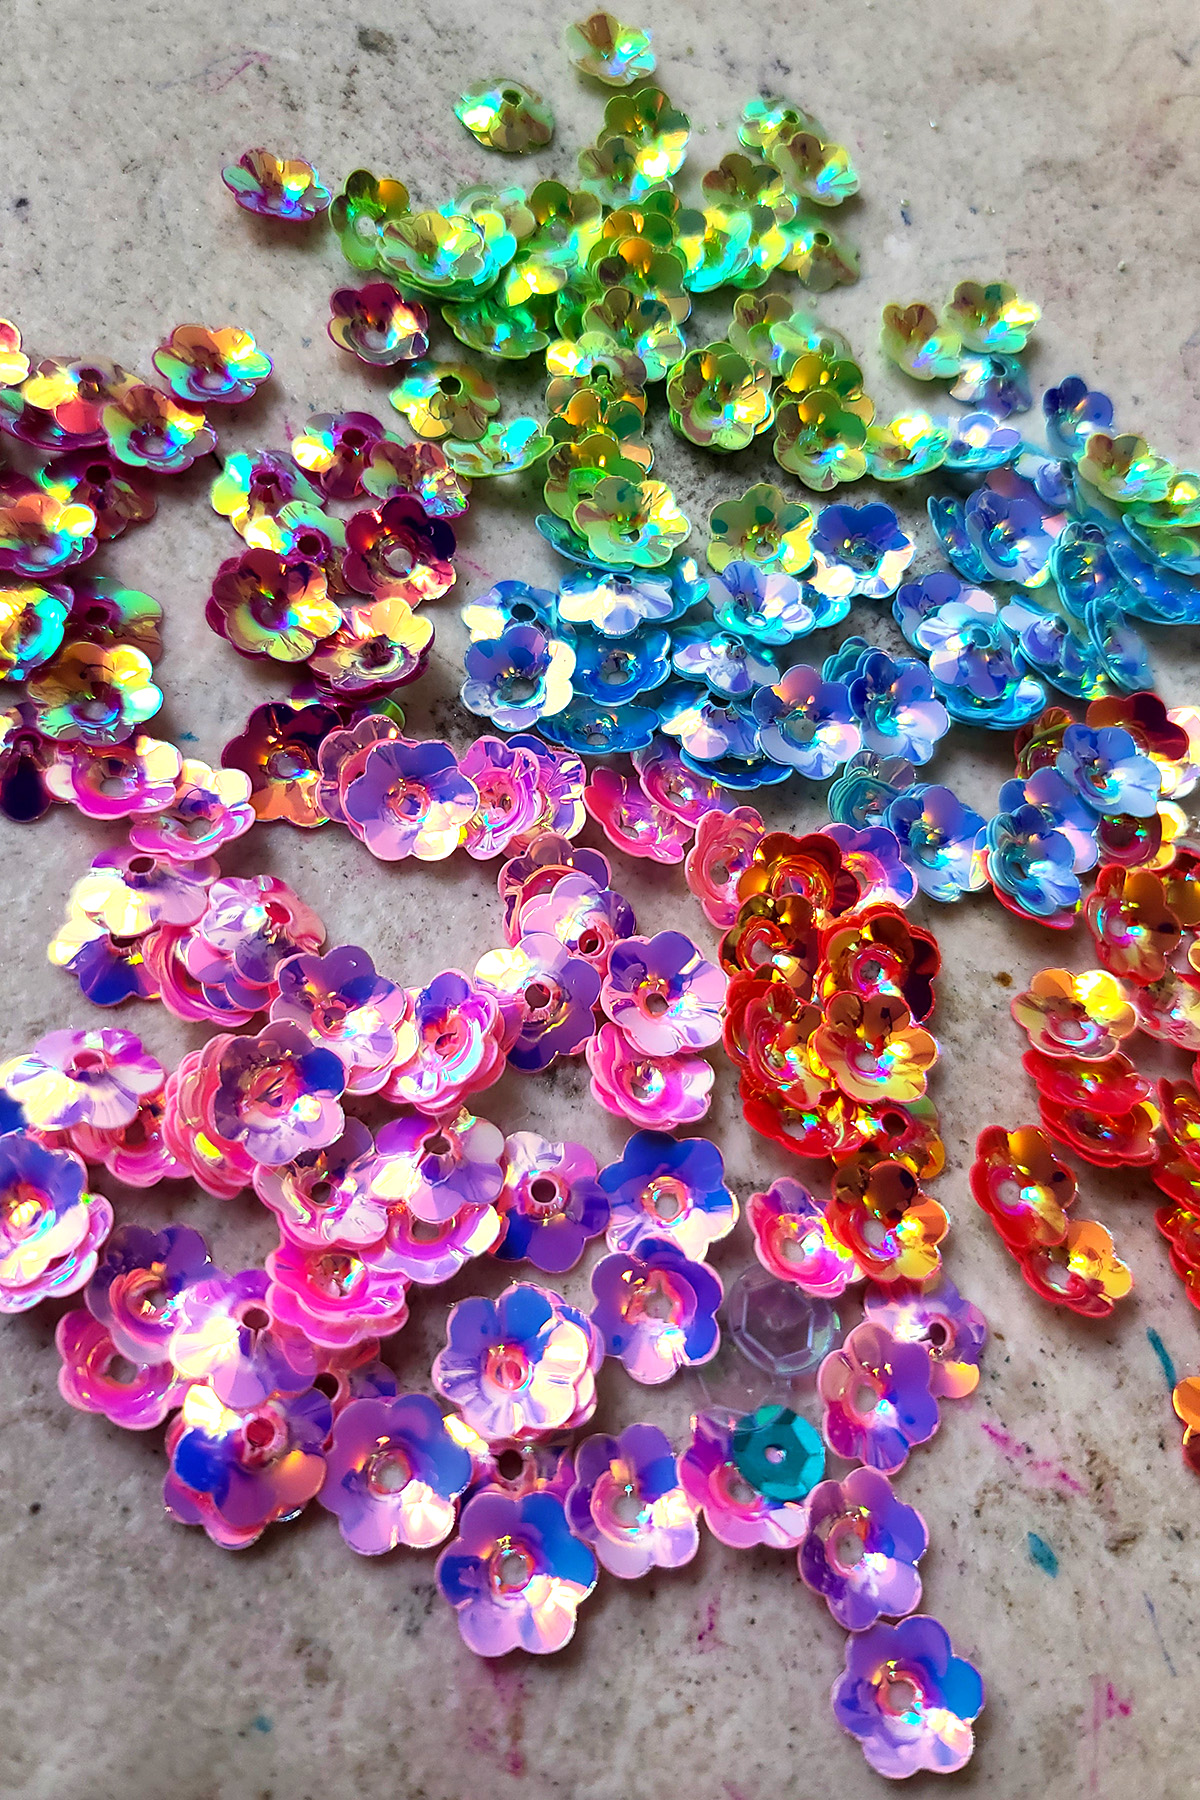 Several piles of iridescent, flower-shaped sequins in pink, orange, blue, green, and purple.